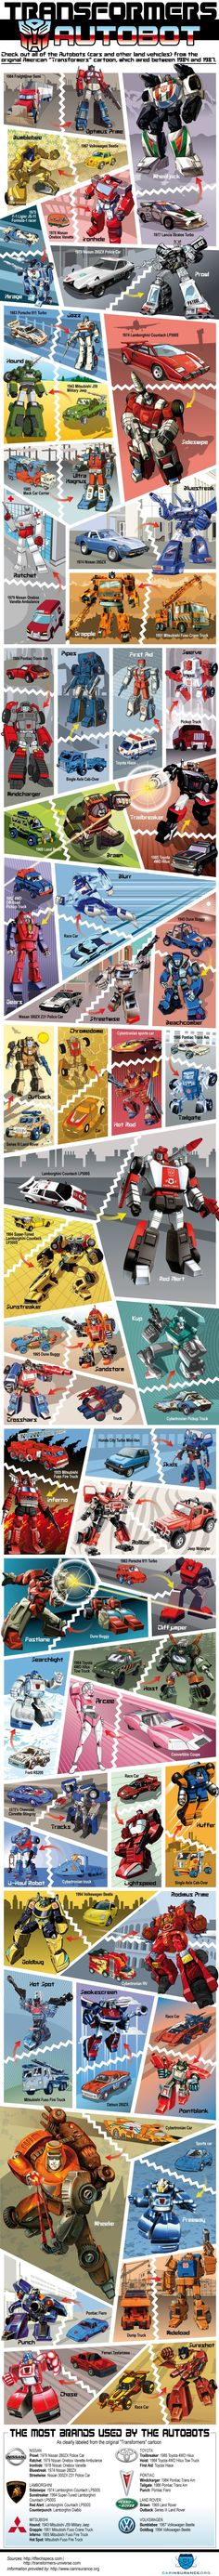 The greatest infographic there ever was and ever will be (probably not the latter but close) Transformers Infographic